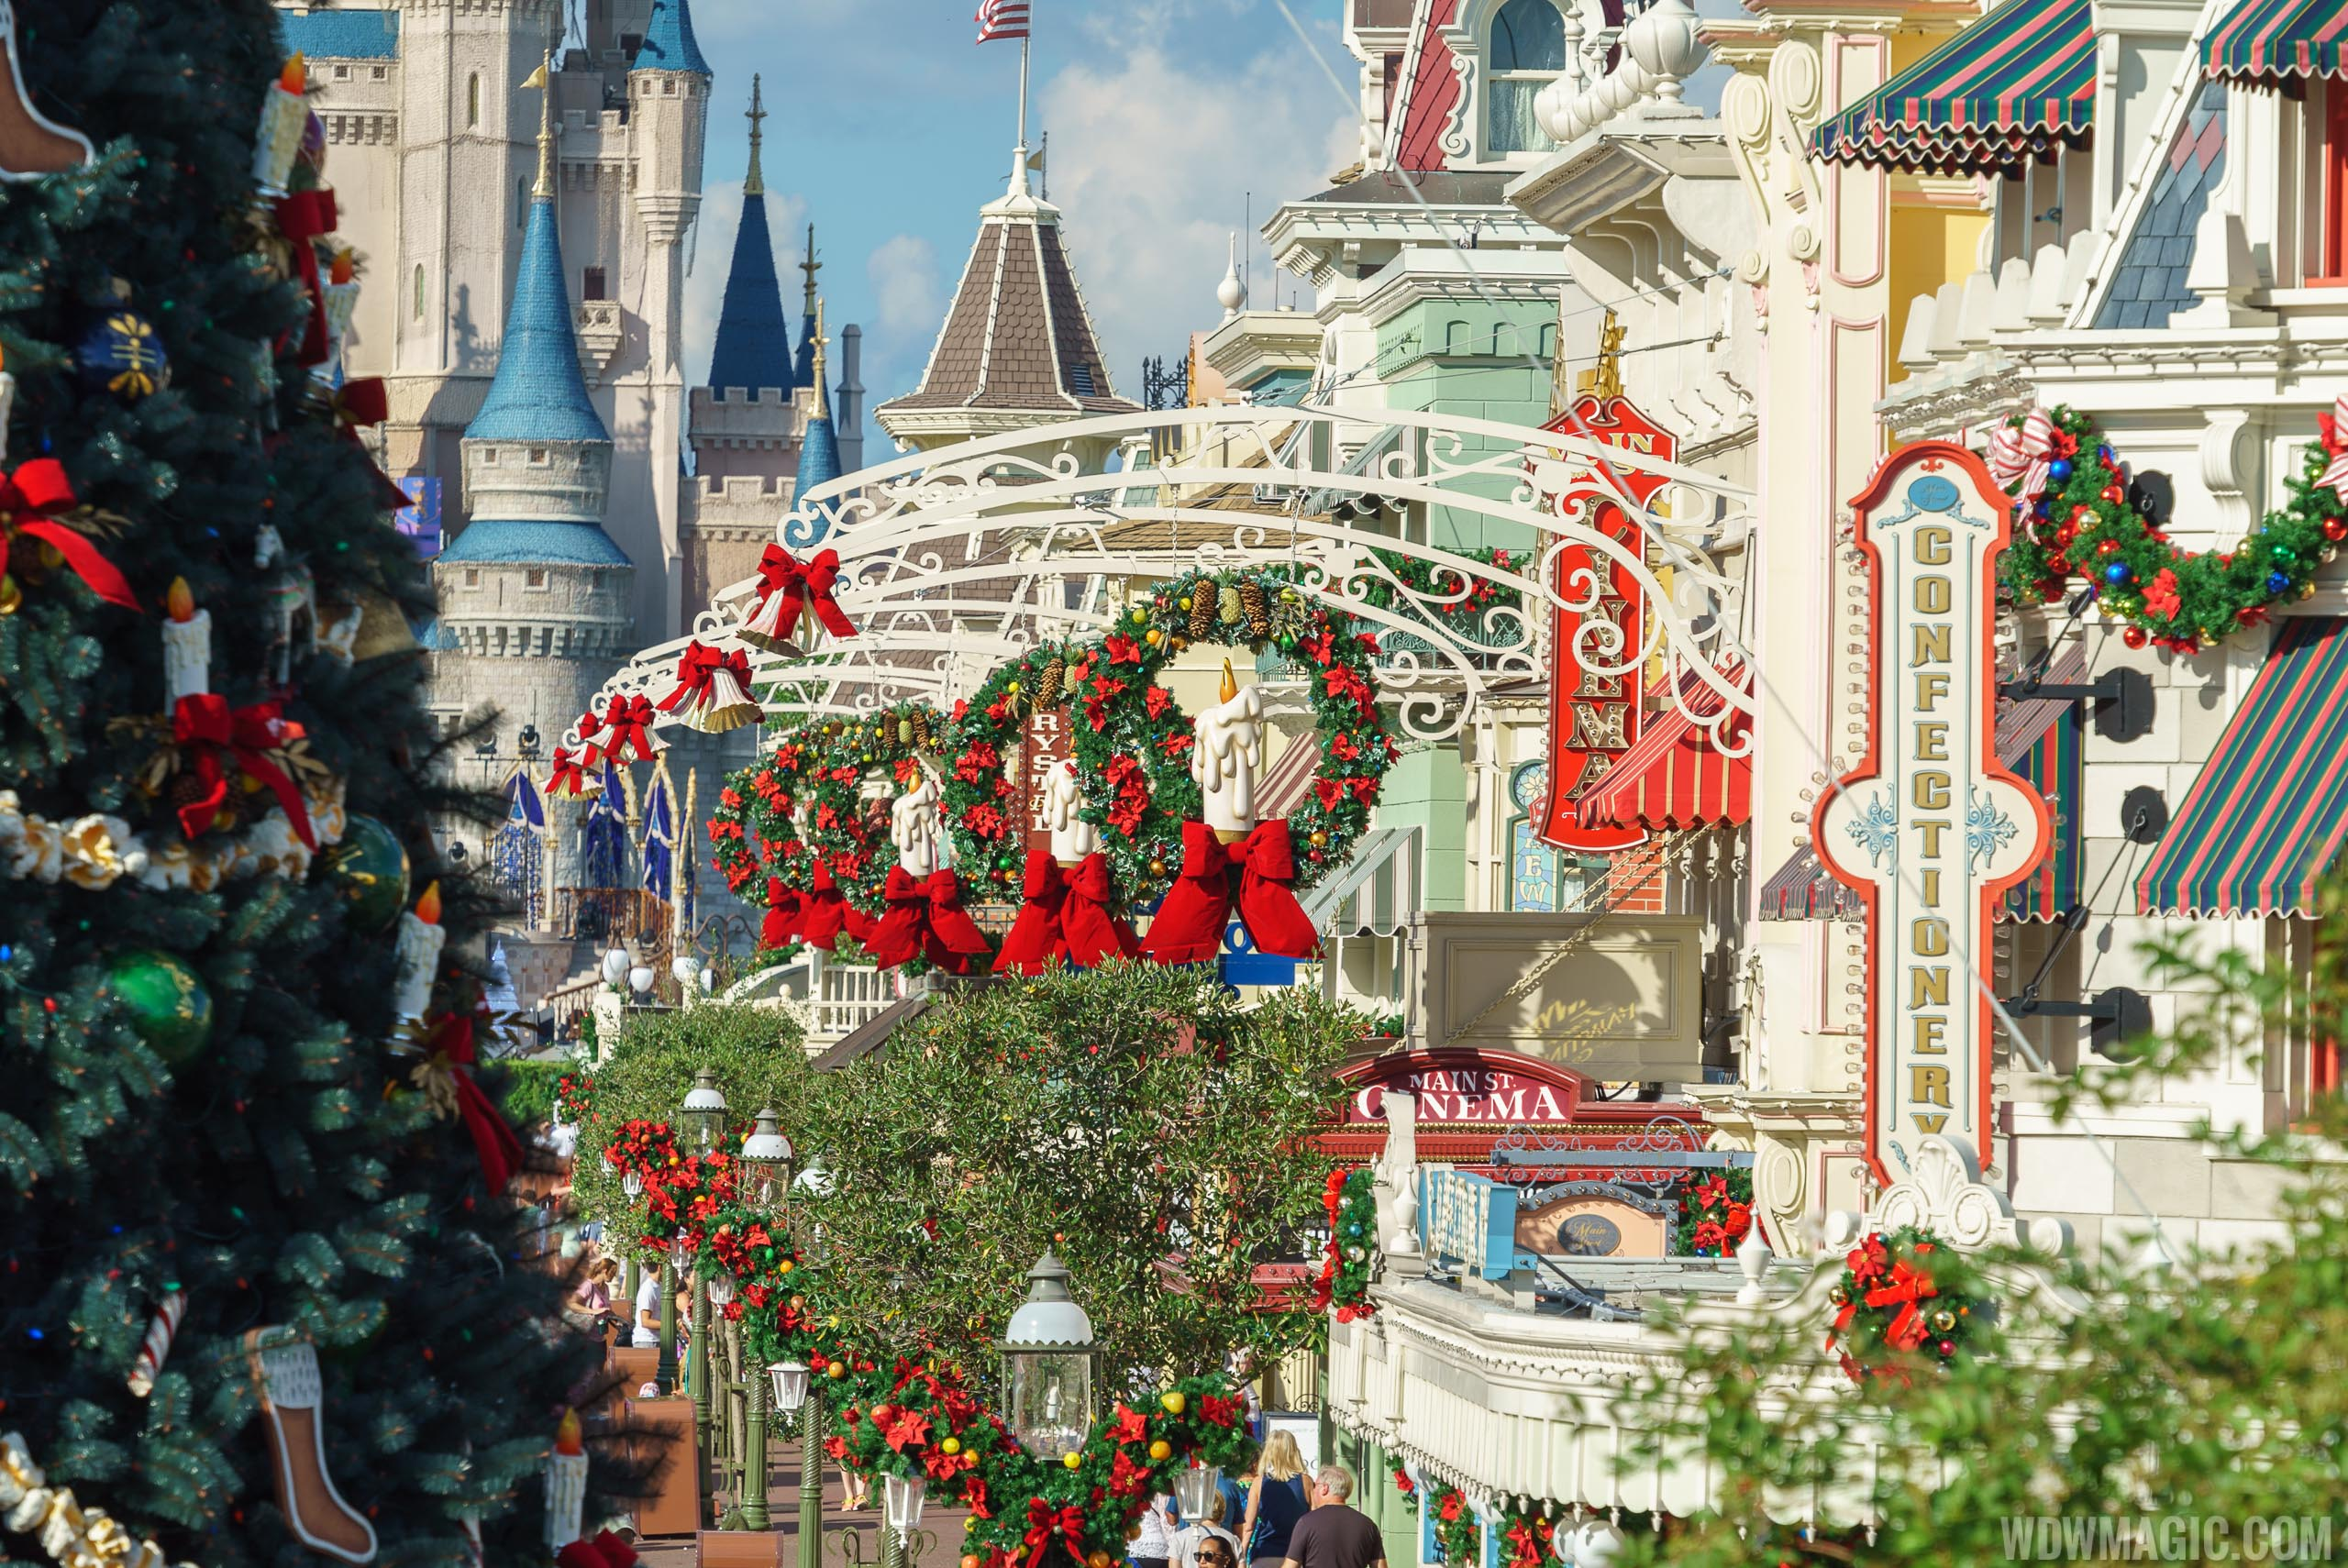 photos the magic kingdoms 2017 christmas holiday decorations - Disney Christmas Decorations 2017